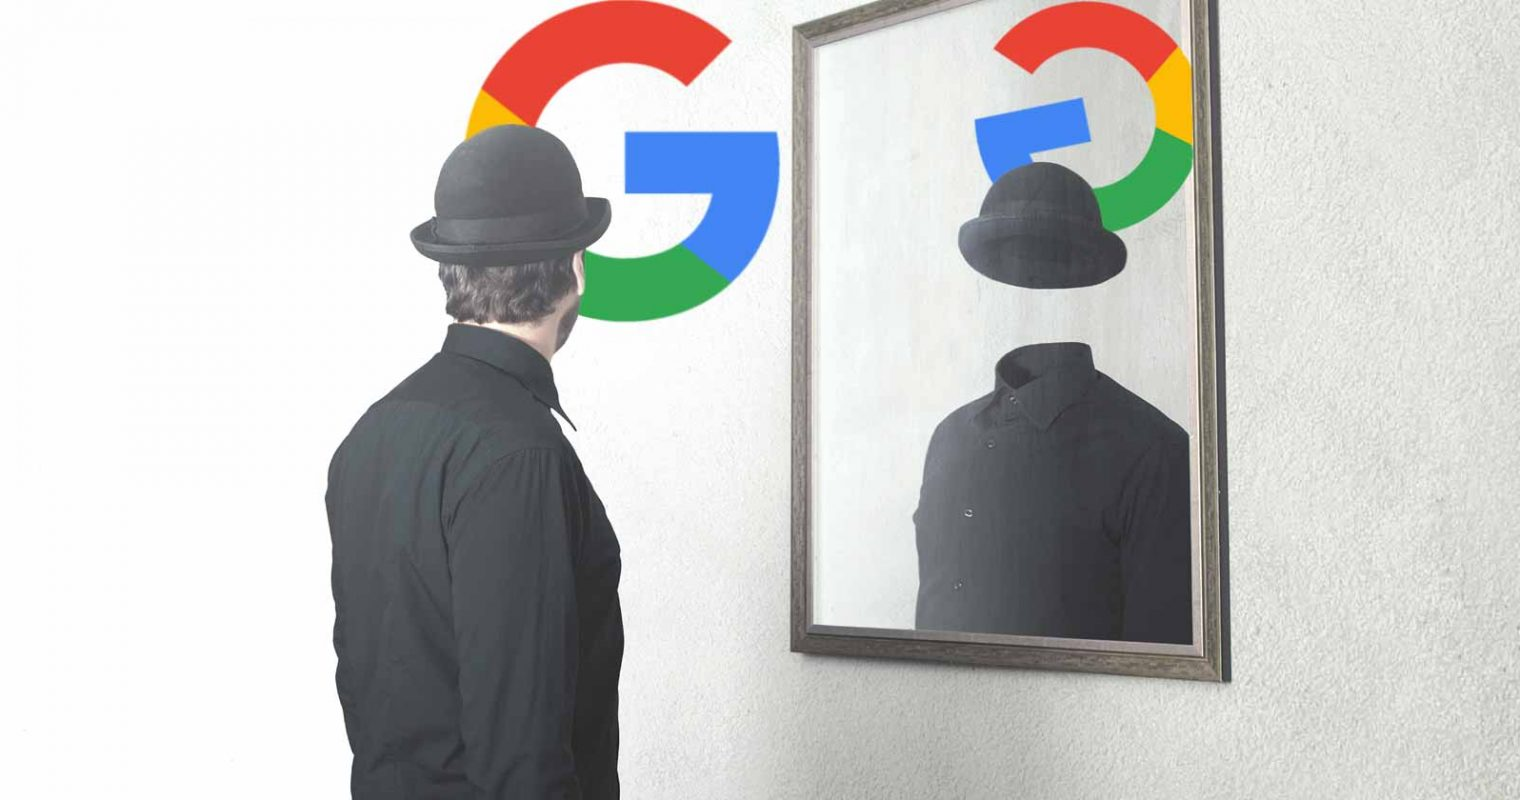 Google Research Paper Reveals a Shortcoming in Search